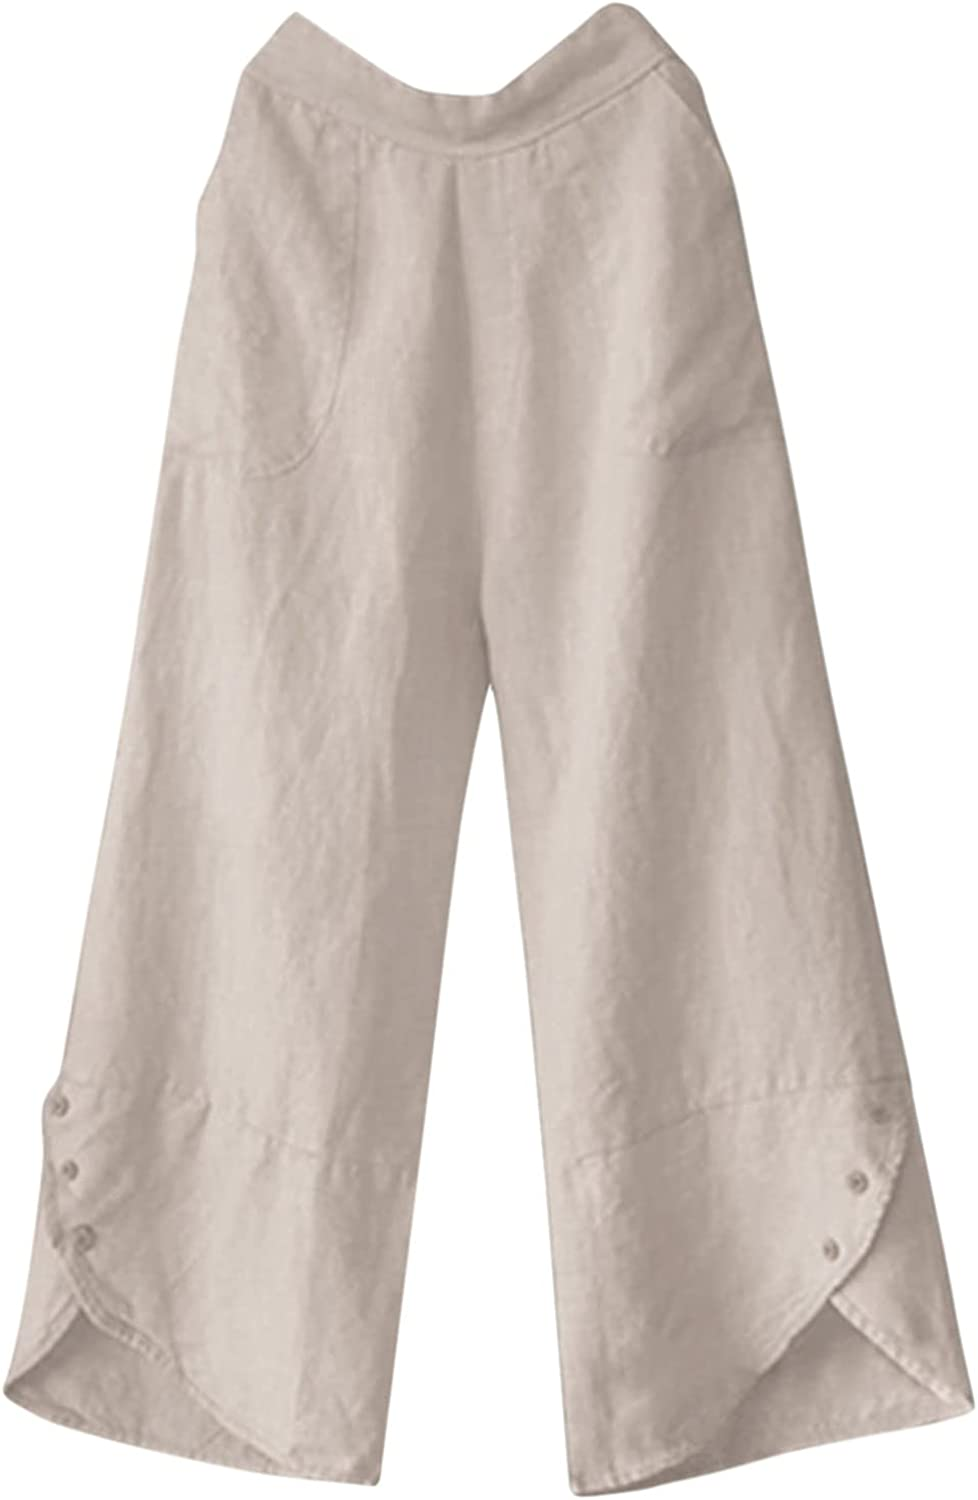 Cotton Linen Pants for Womens Casual 4 years warranty Solid Wai Elastic High Rise Complete Free Shipping